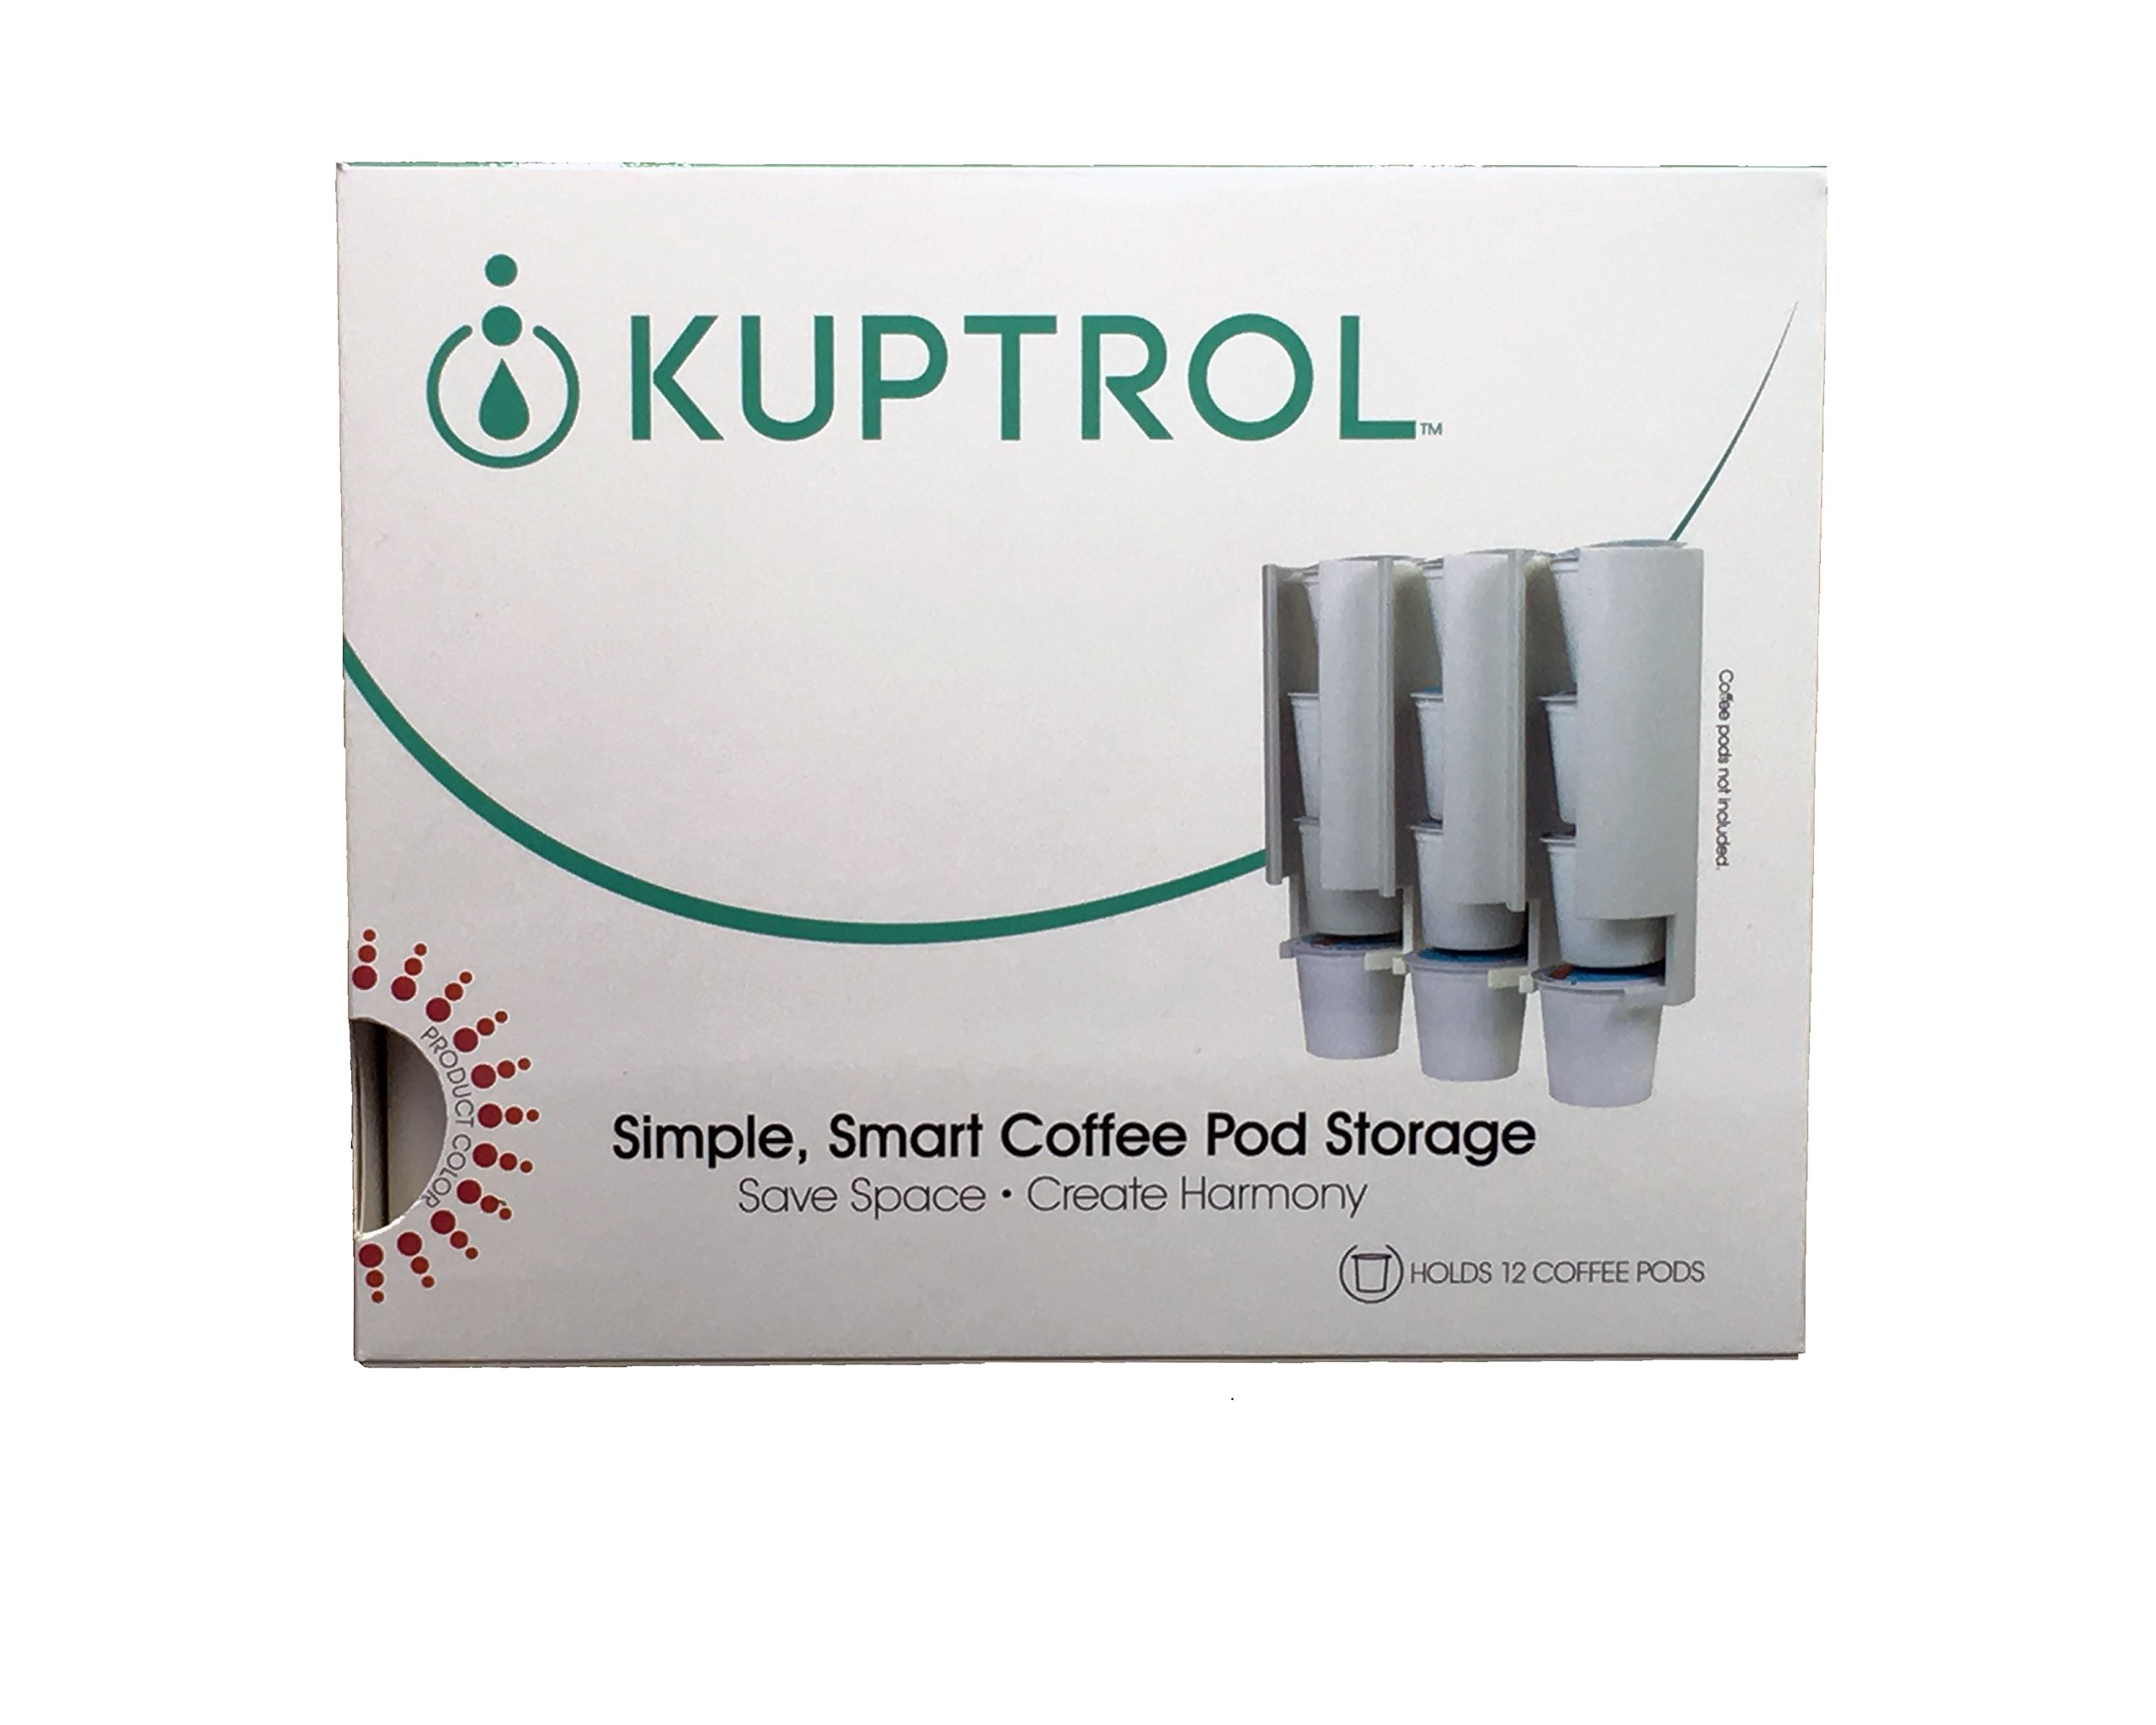 Kuptrol K-Cup Coffee Pod Holder - Maximize countertop space in a simple, smart way.